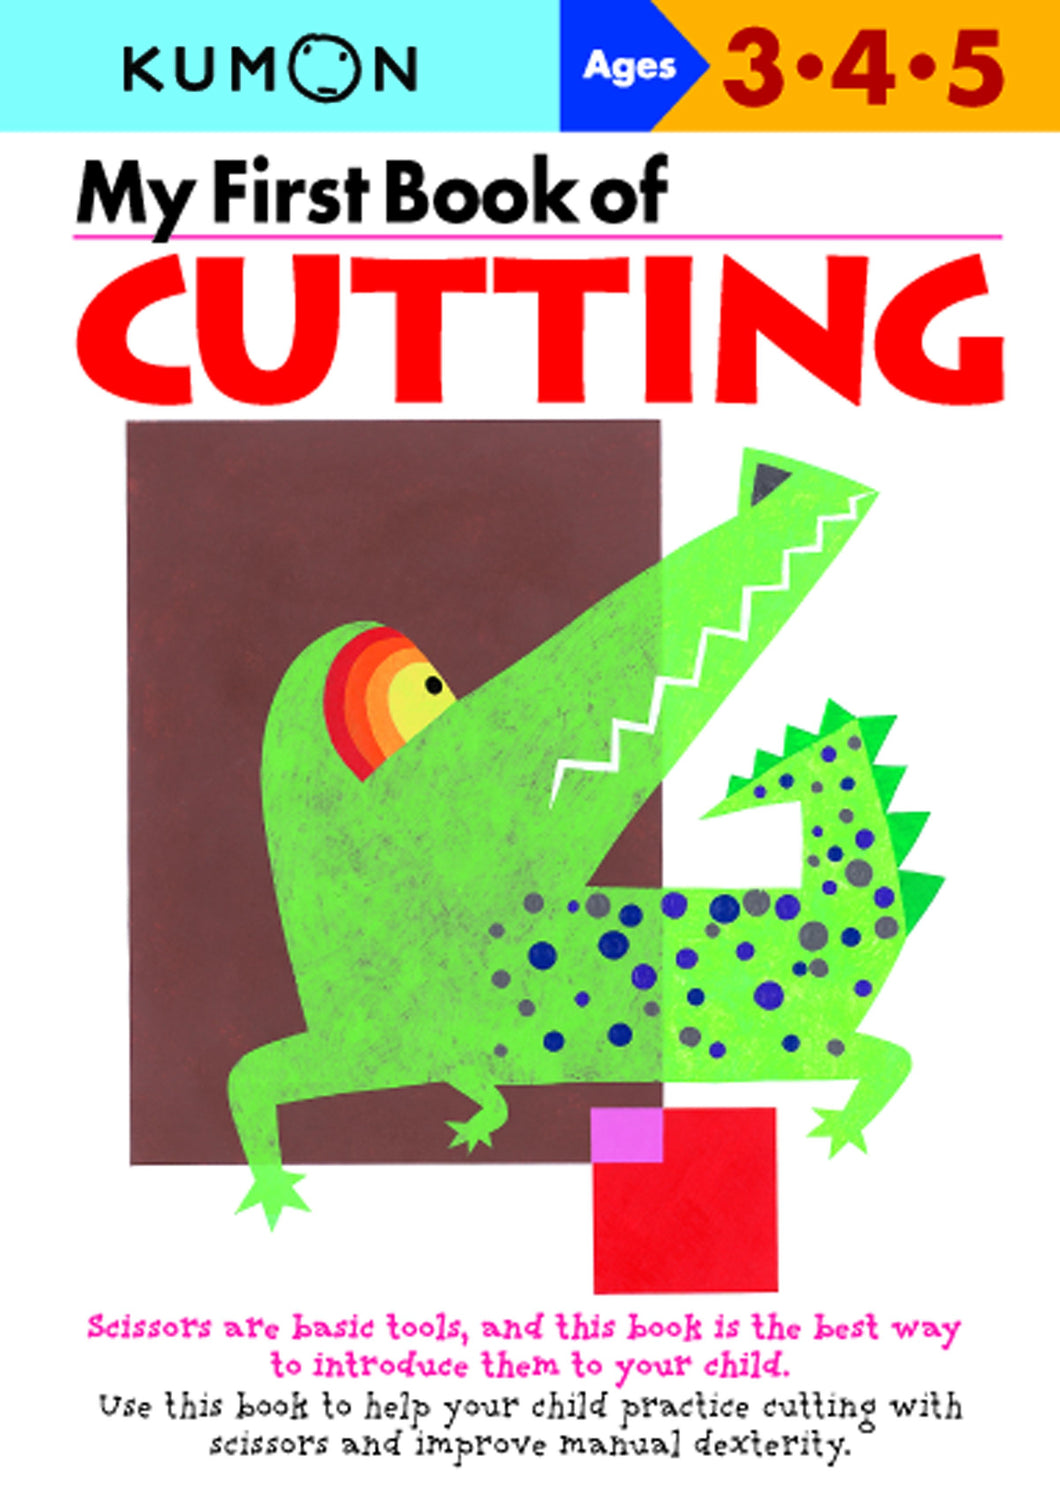 My First Book of Cutting: Ages 3, 4, 5